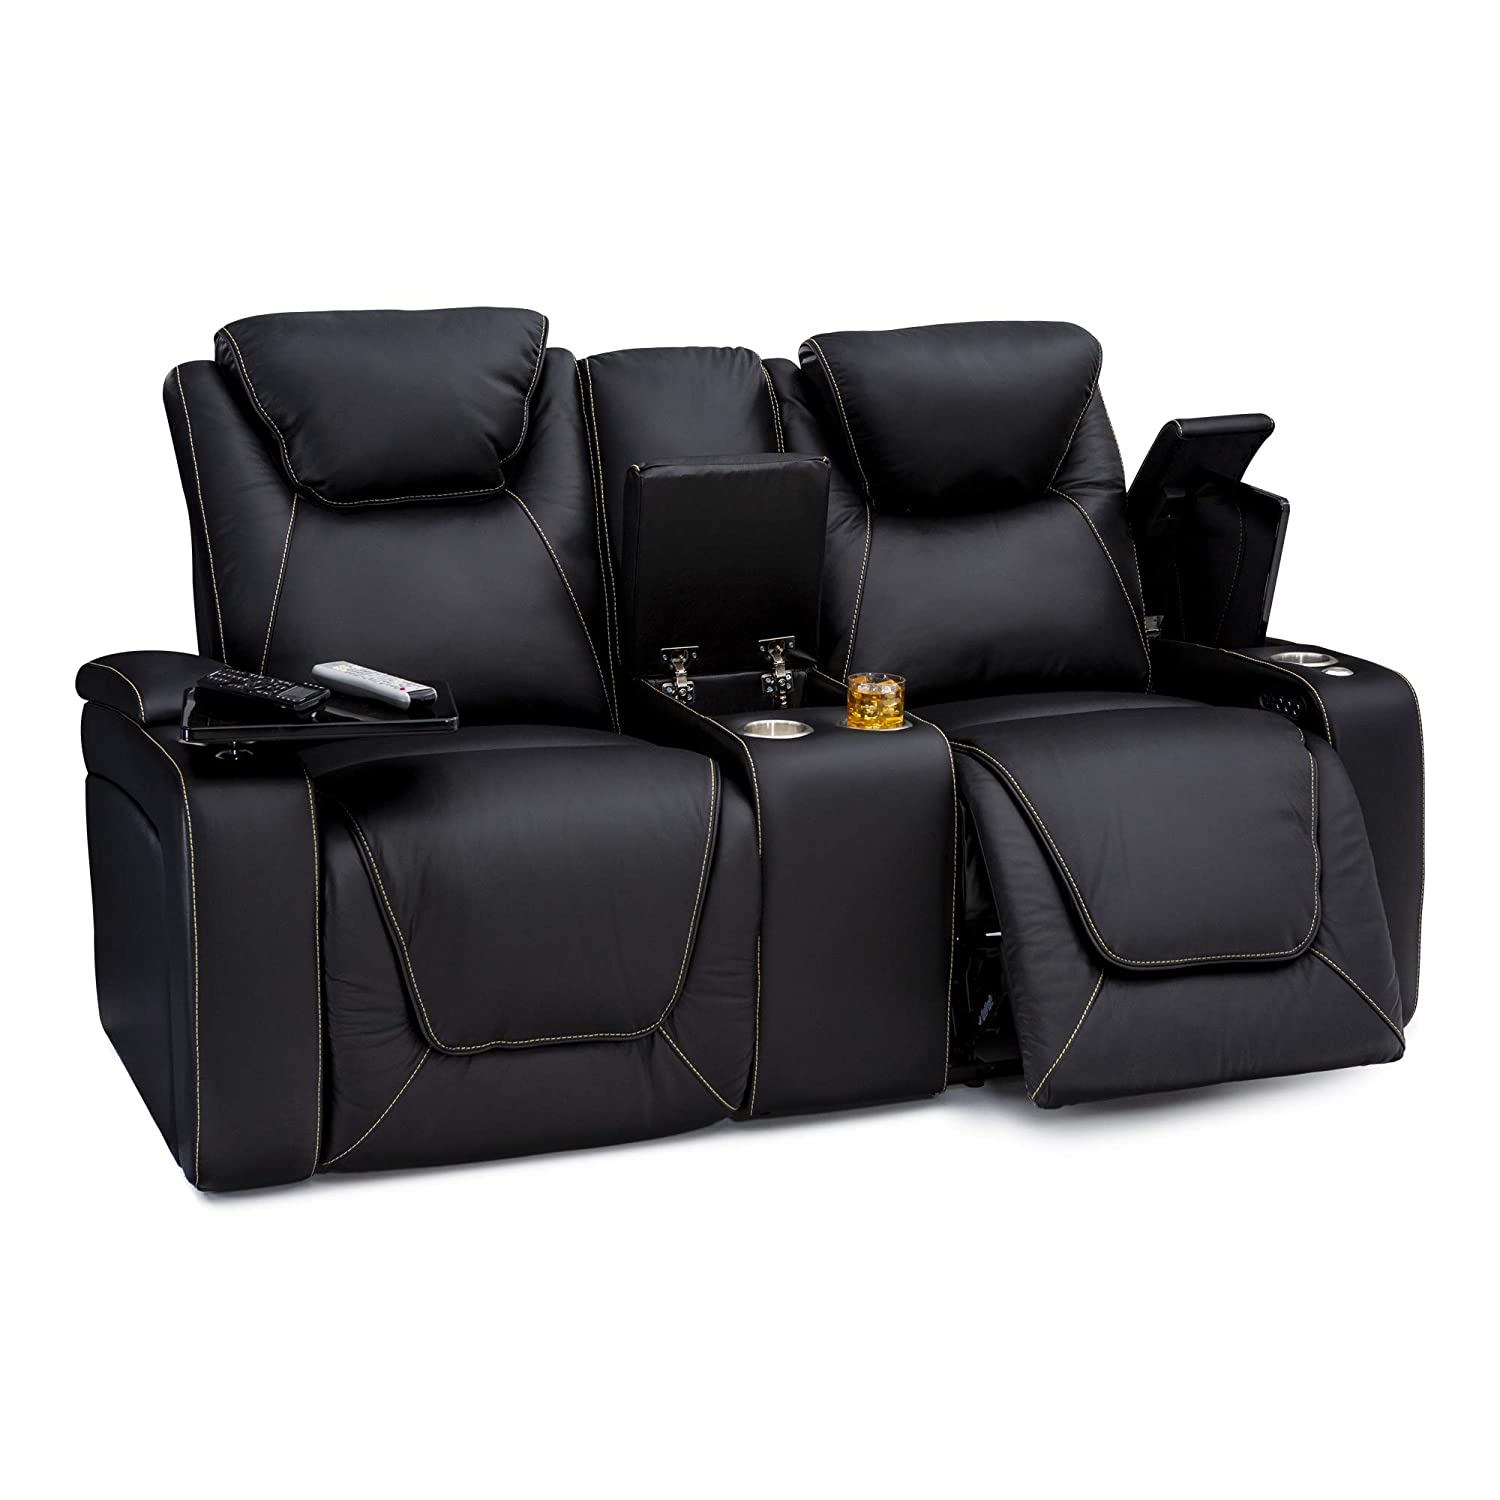 Seatcraft Vienna Home Theater Seating Leather Sofa Recline